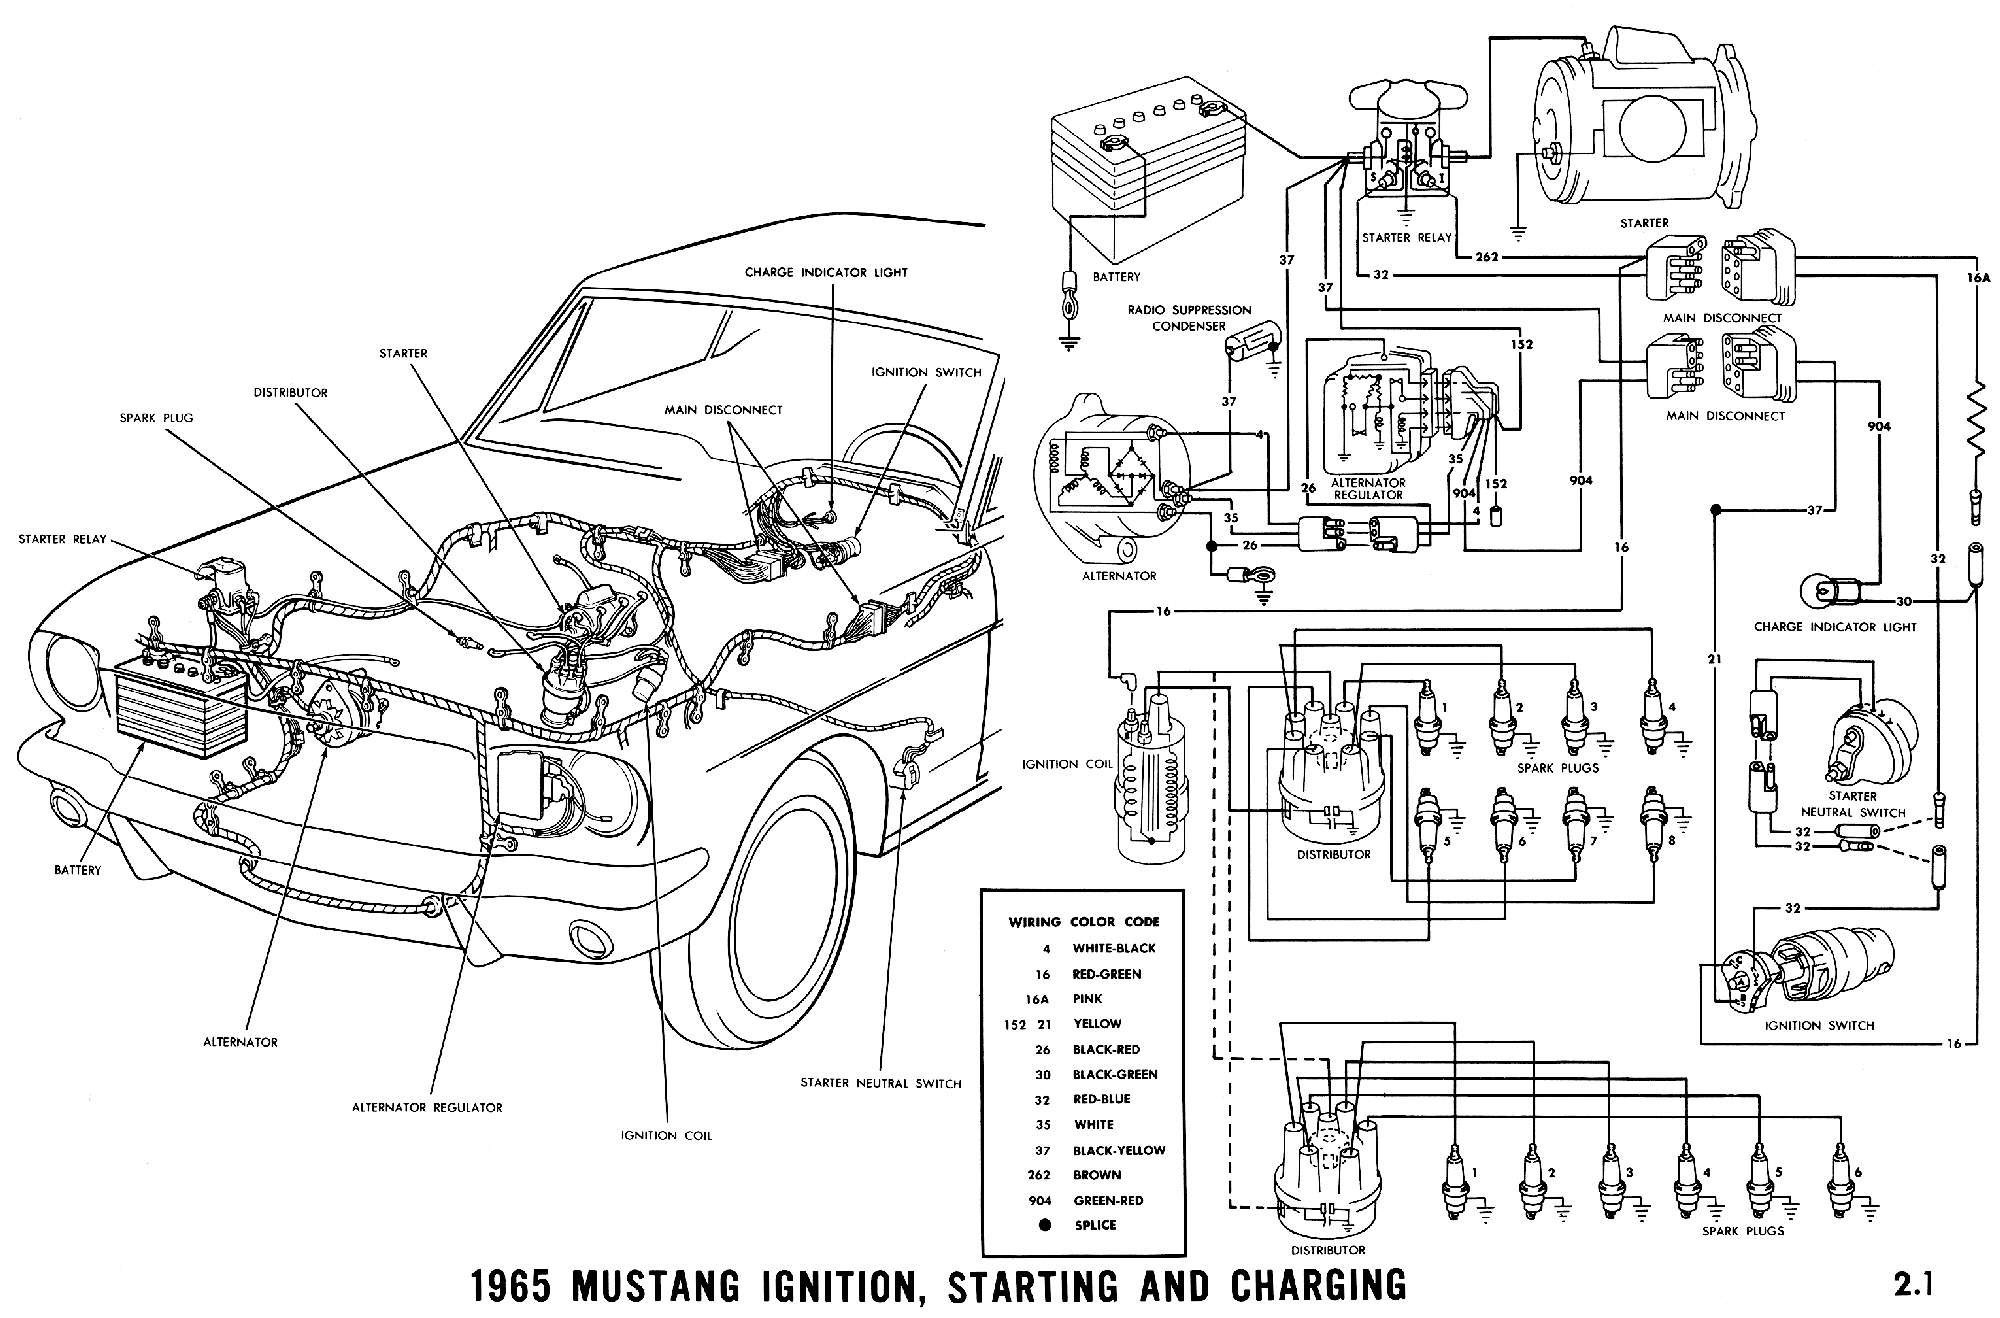 Car Engine Labeled Diagram Car Parts Labeled Diagram Engine Parts ...